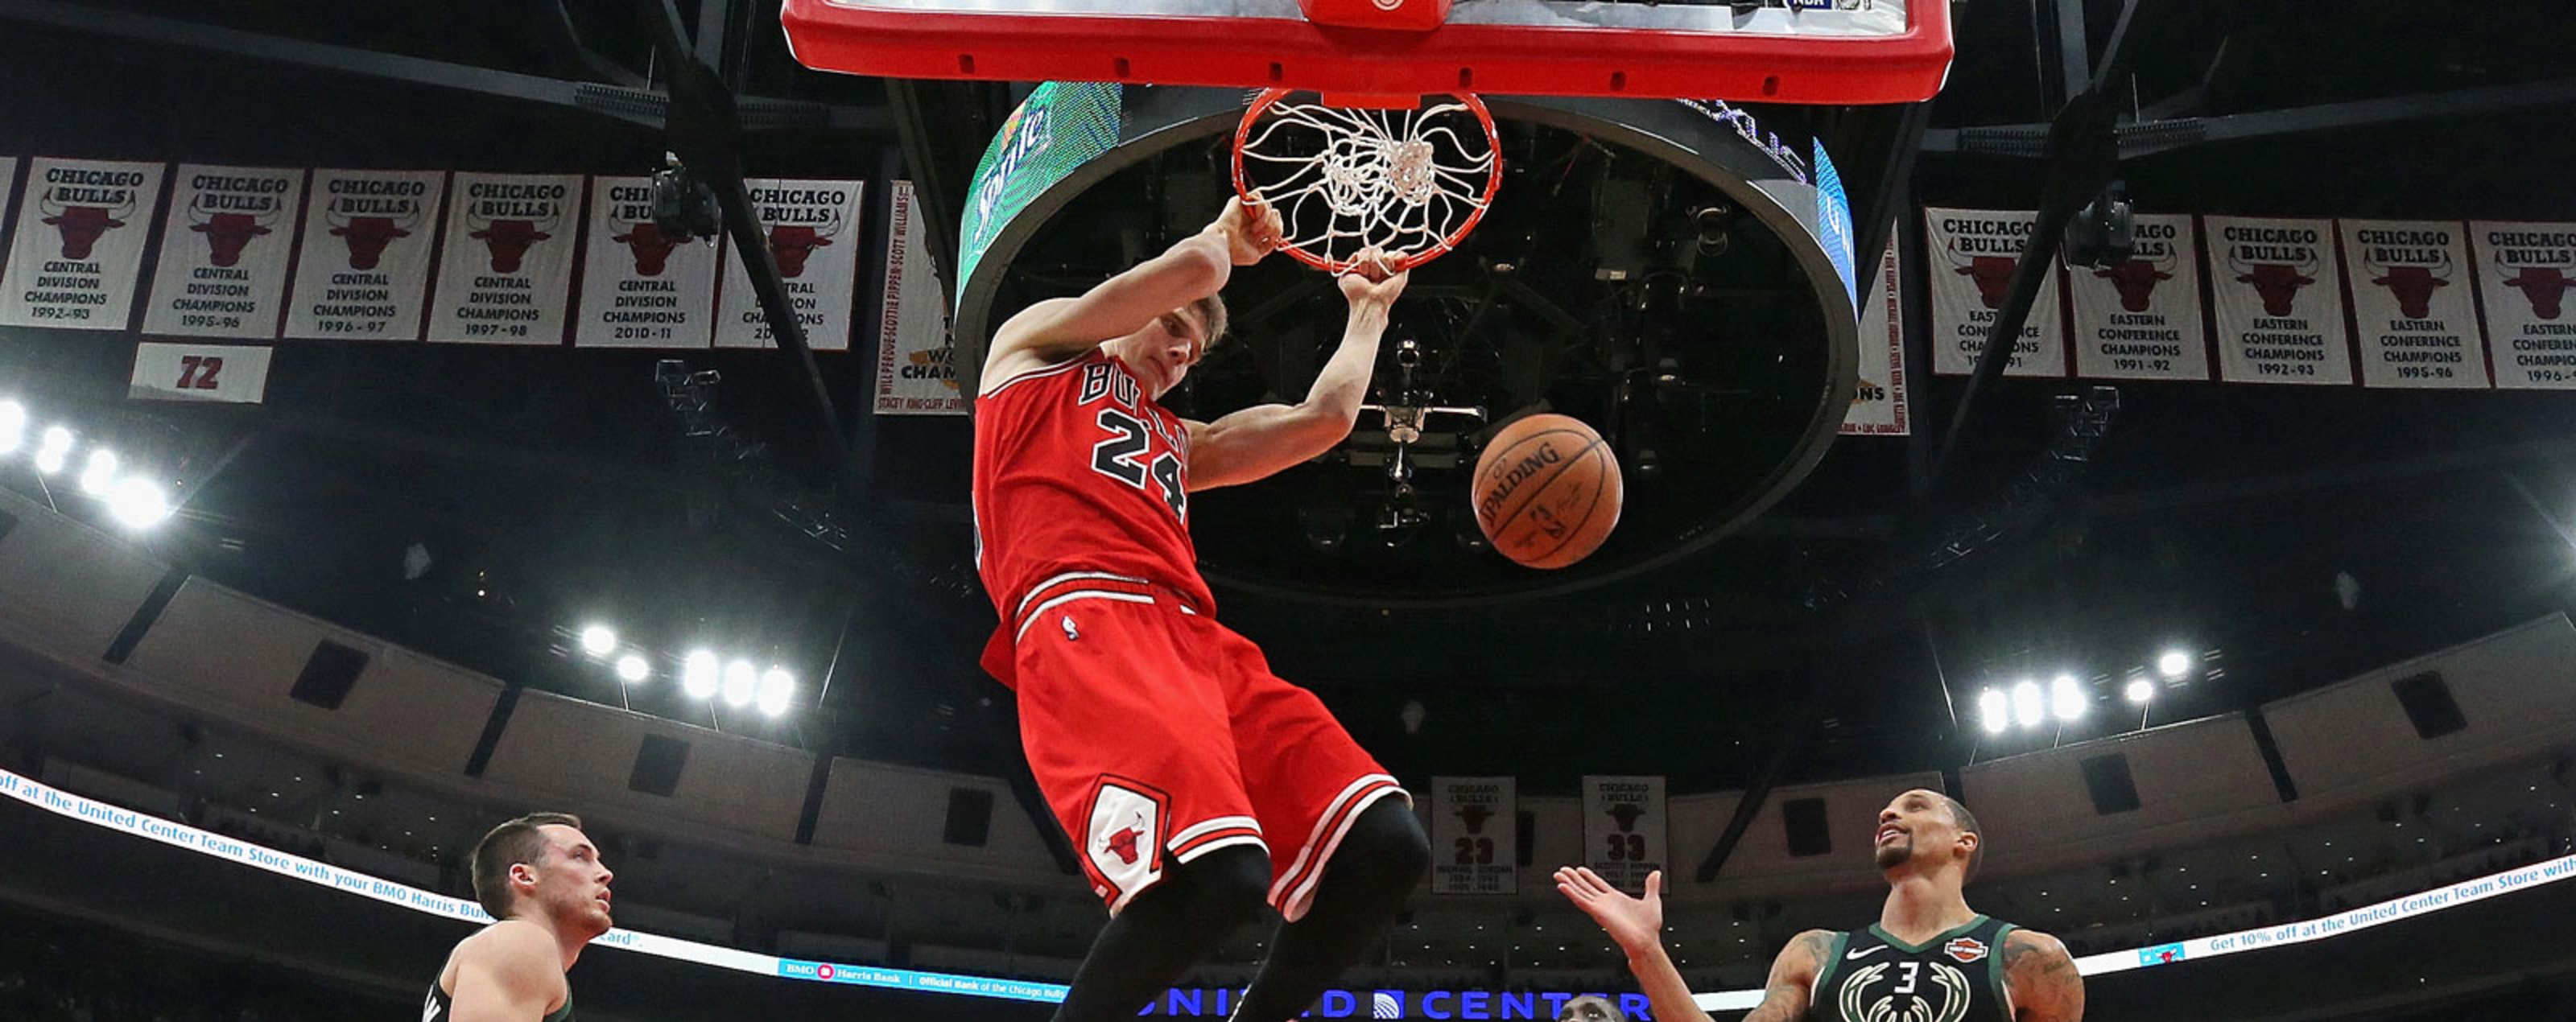 f565b1a0cd6 Lauri Markkanen dunks the ball against the Milwaukee Bucks.